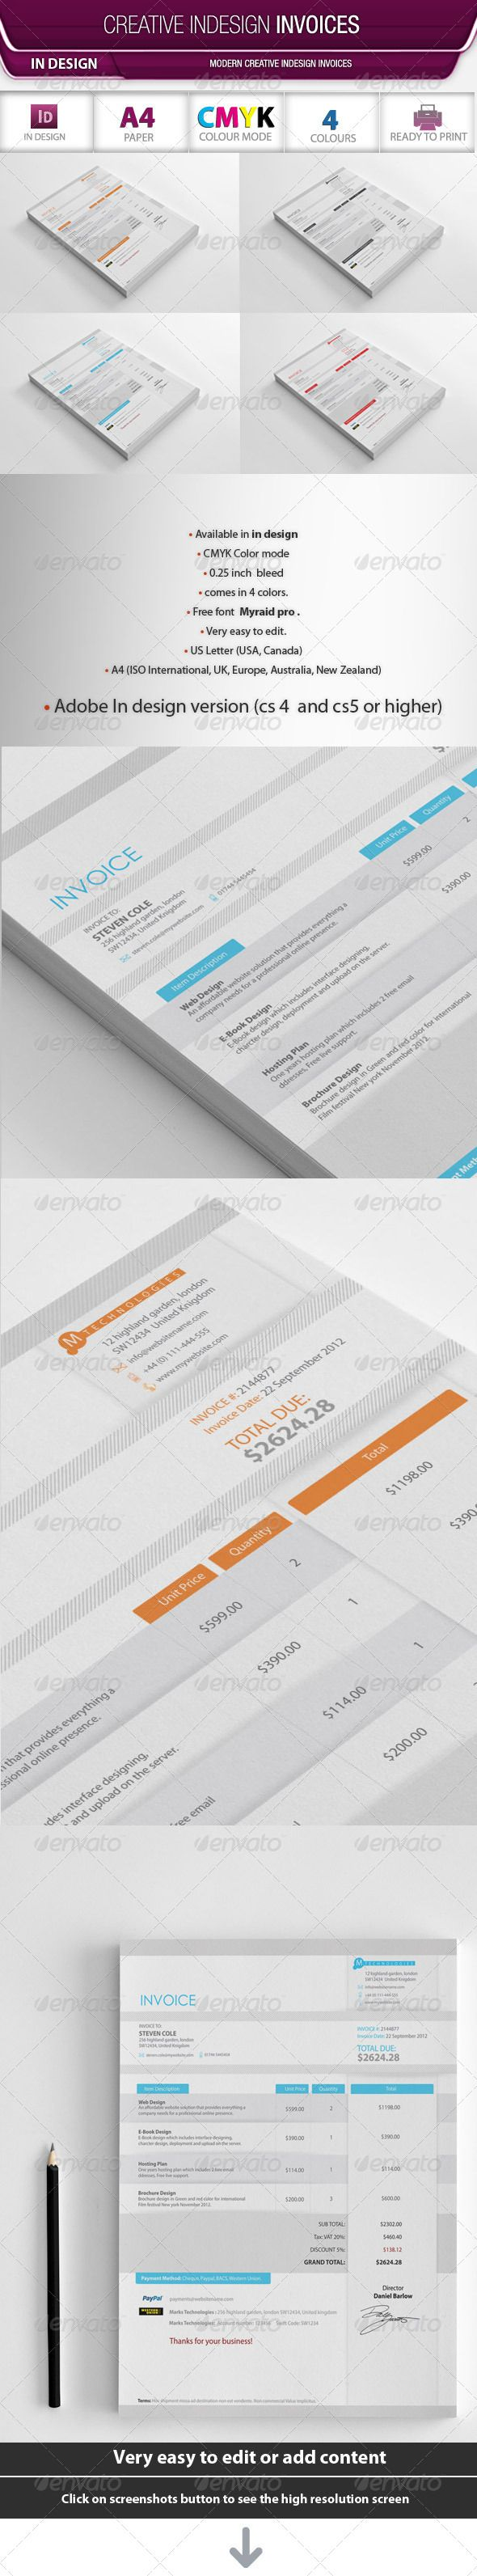 Creative Indesign Invoices  Creative Fonts And Logos